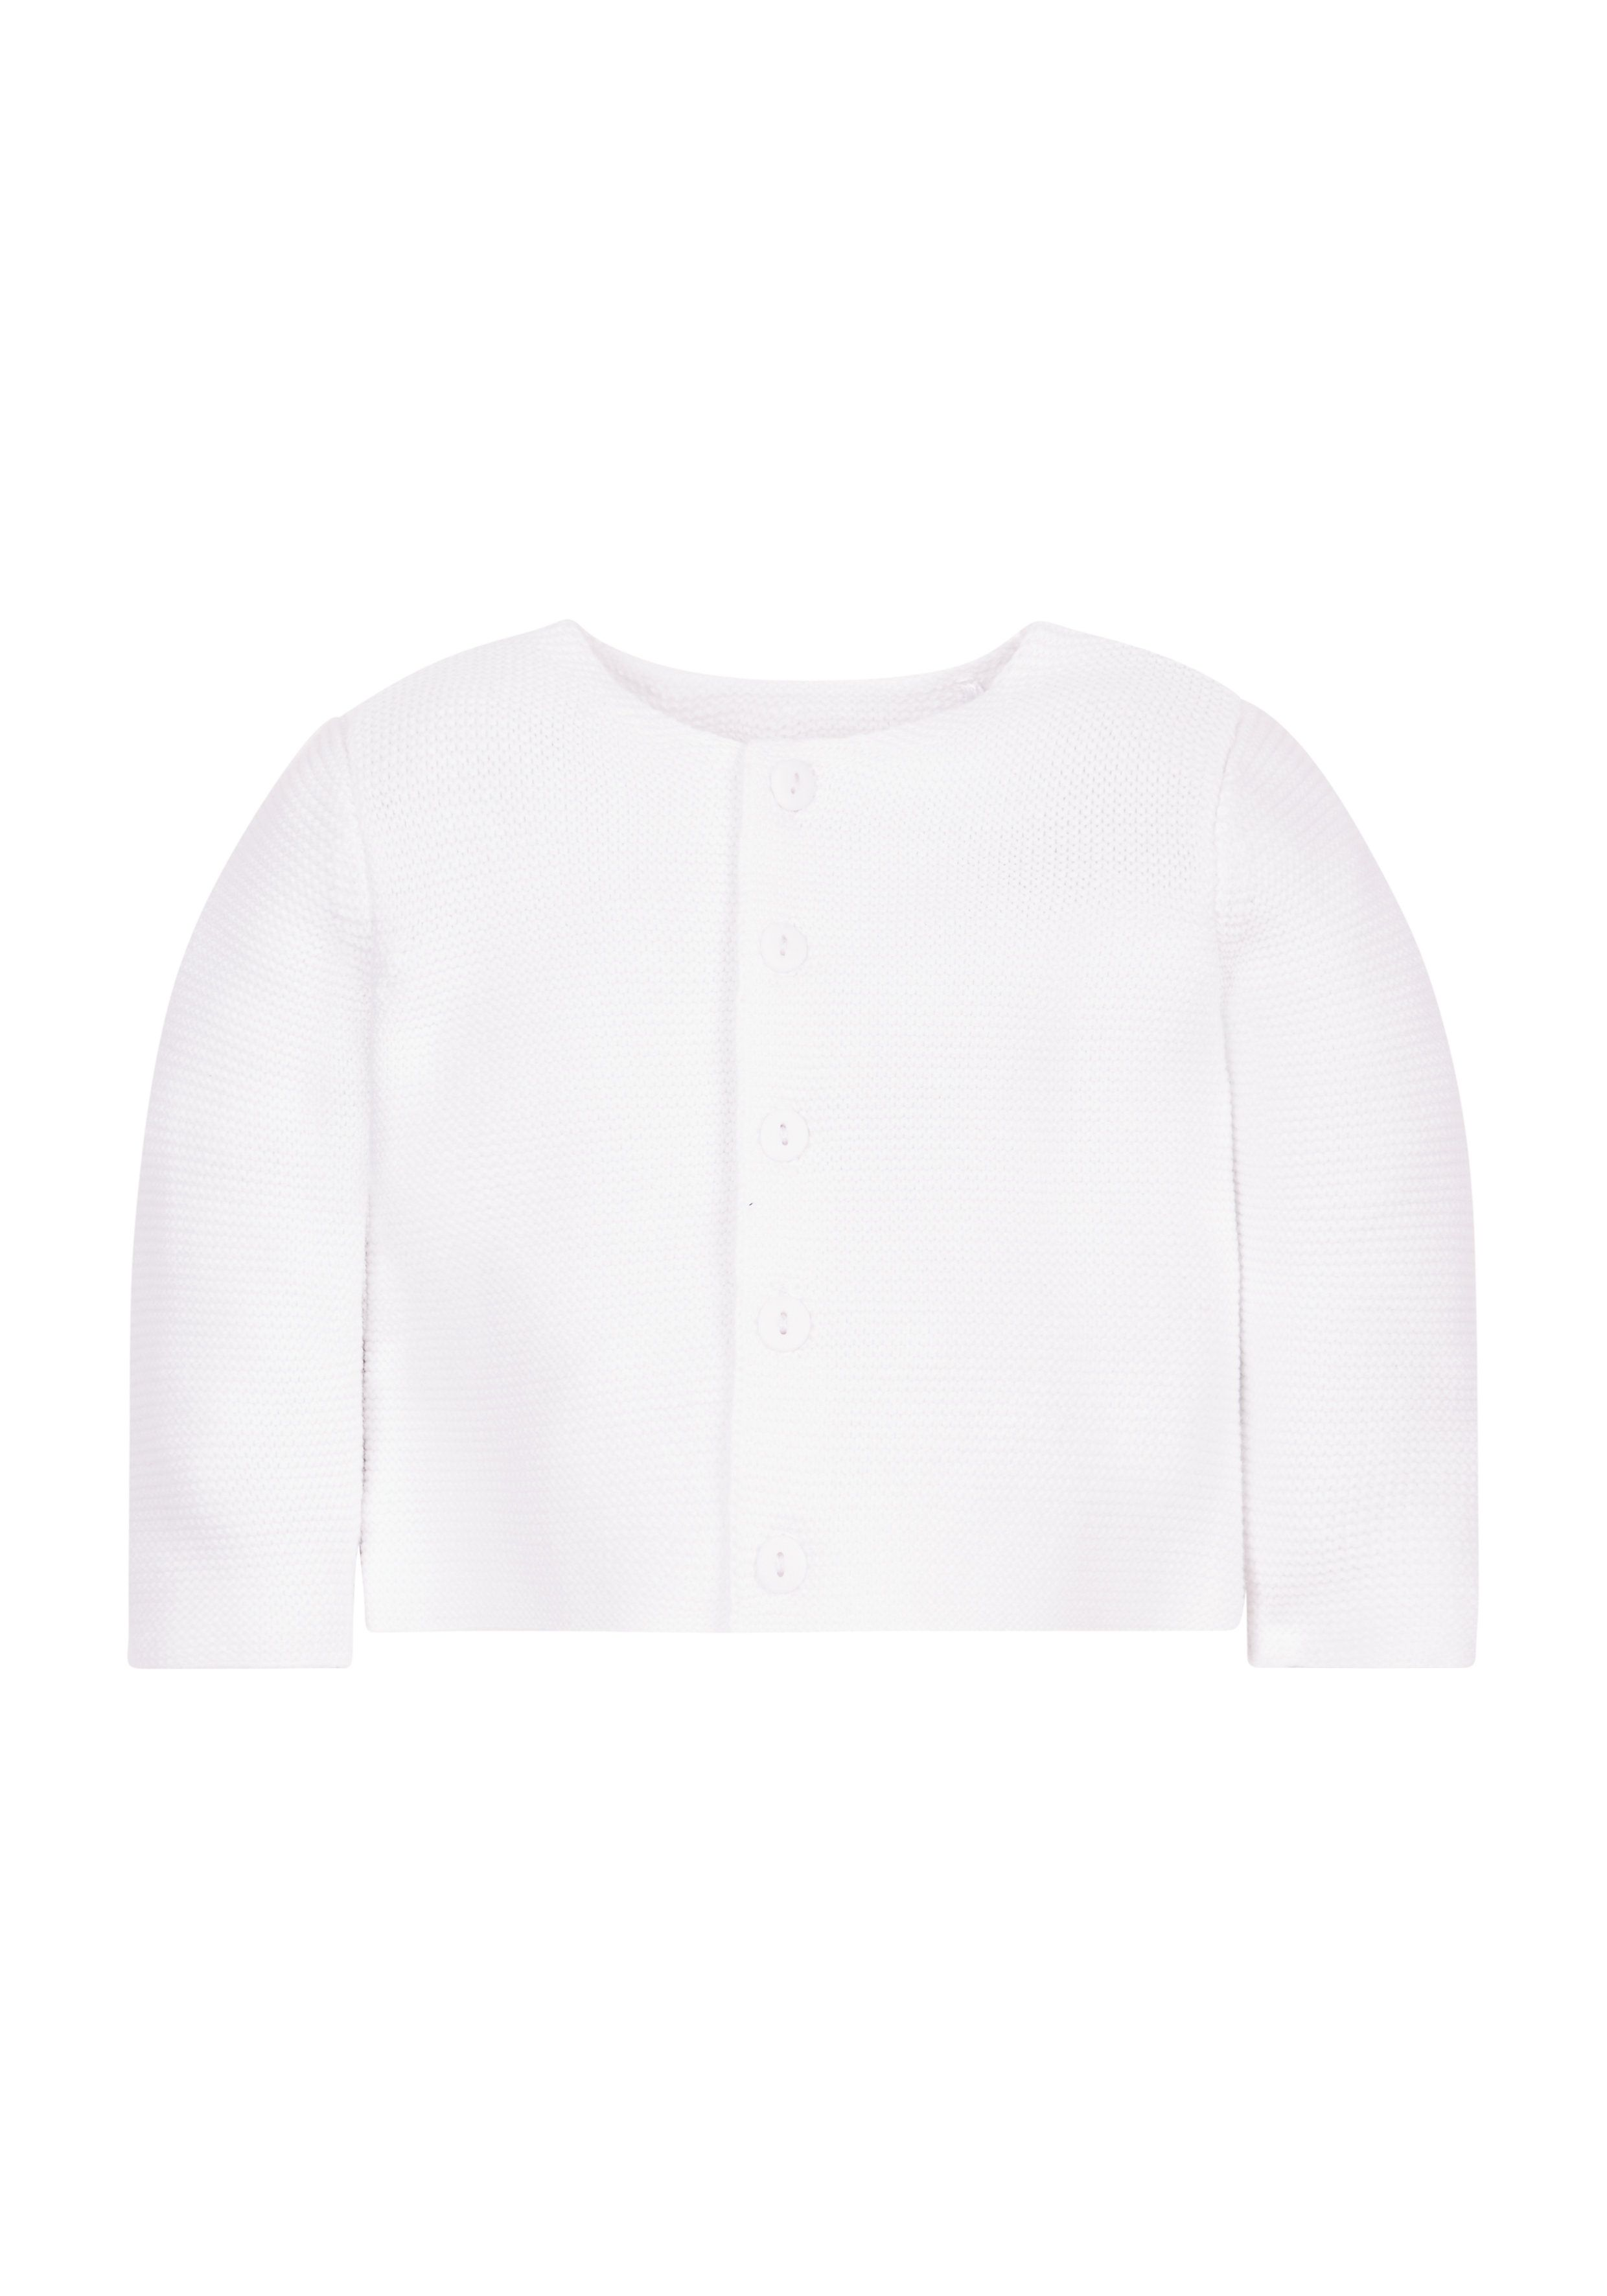 Mothercare | Unisex Purl Knit Cardigan - White